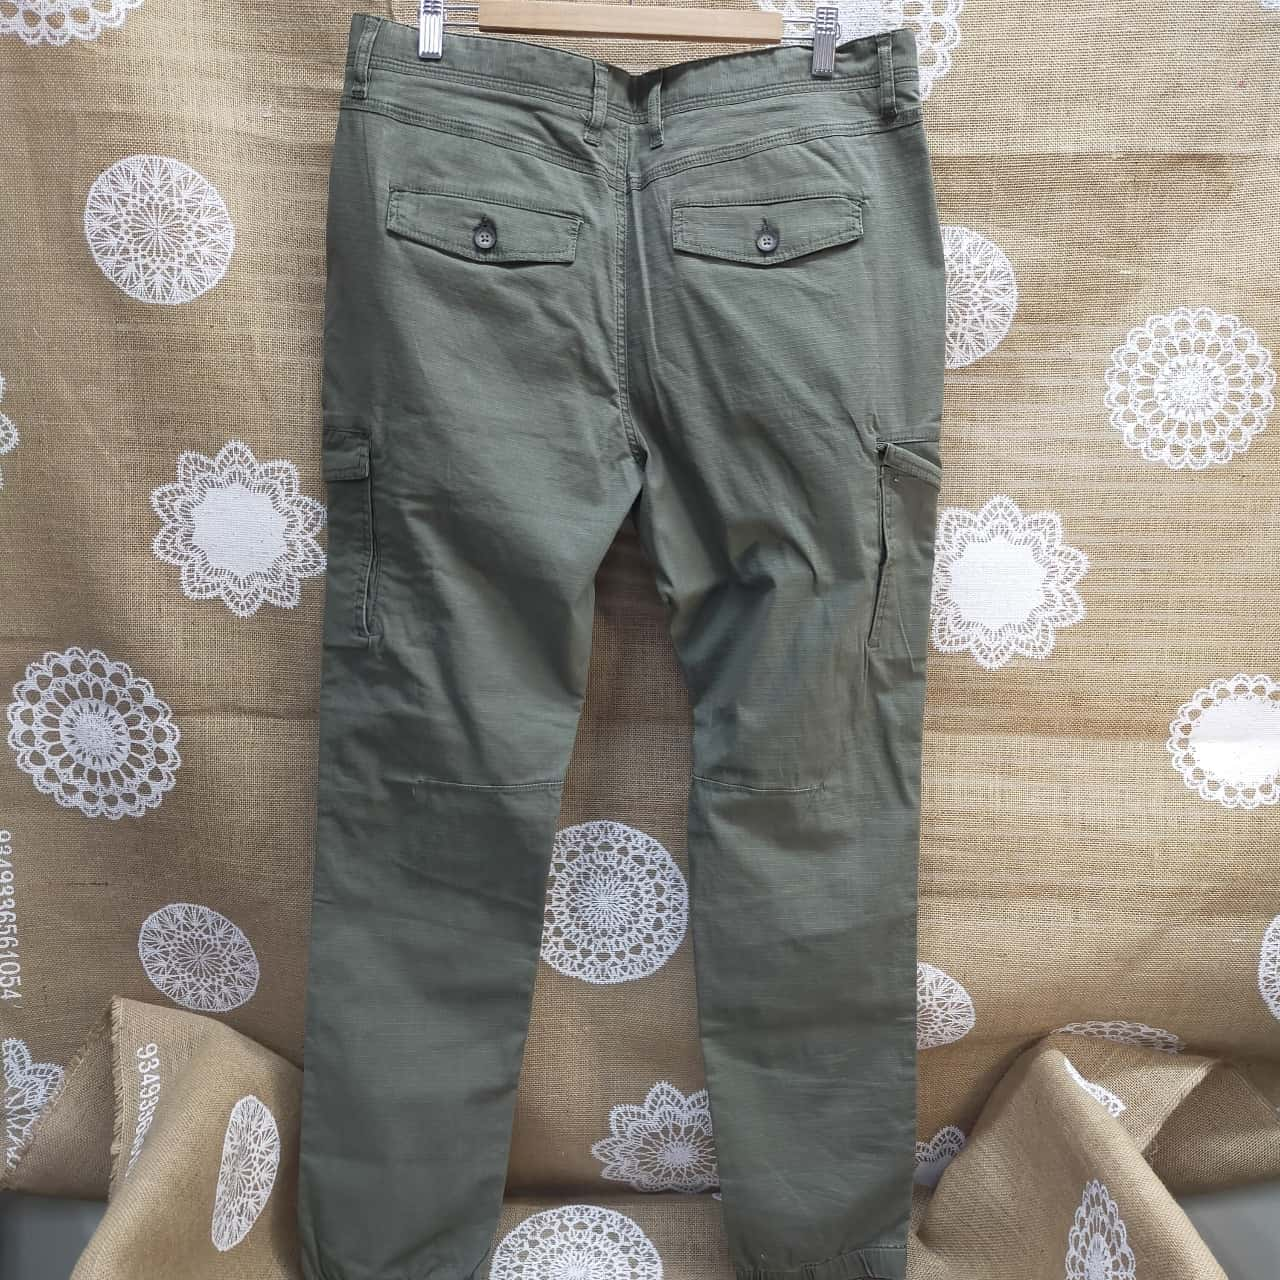 Jeanswest Mens Size 34 Cargo Pants Green